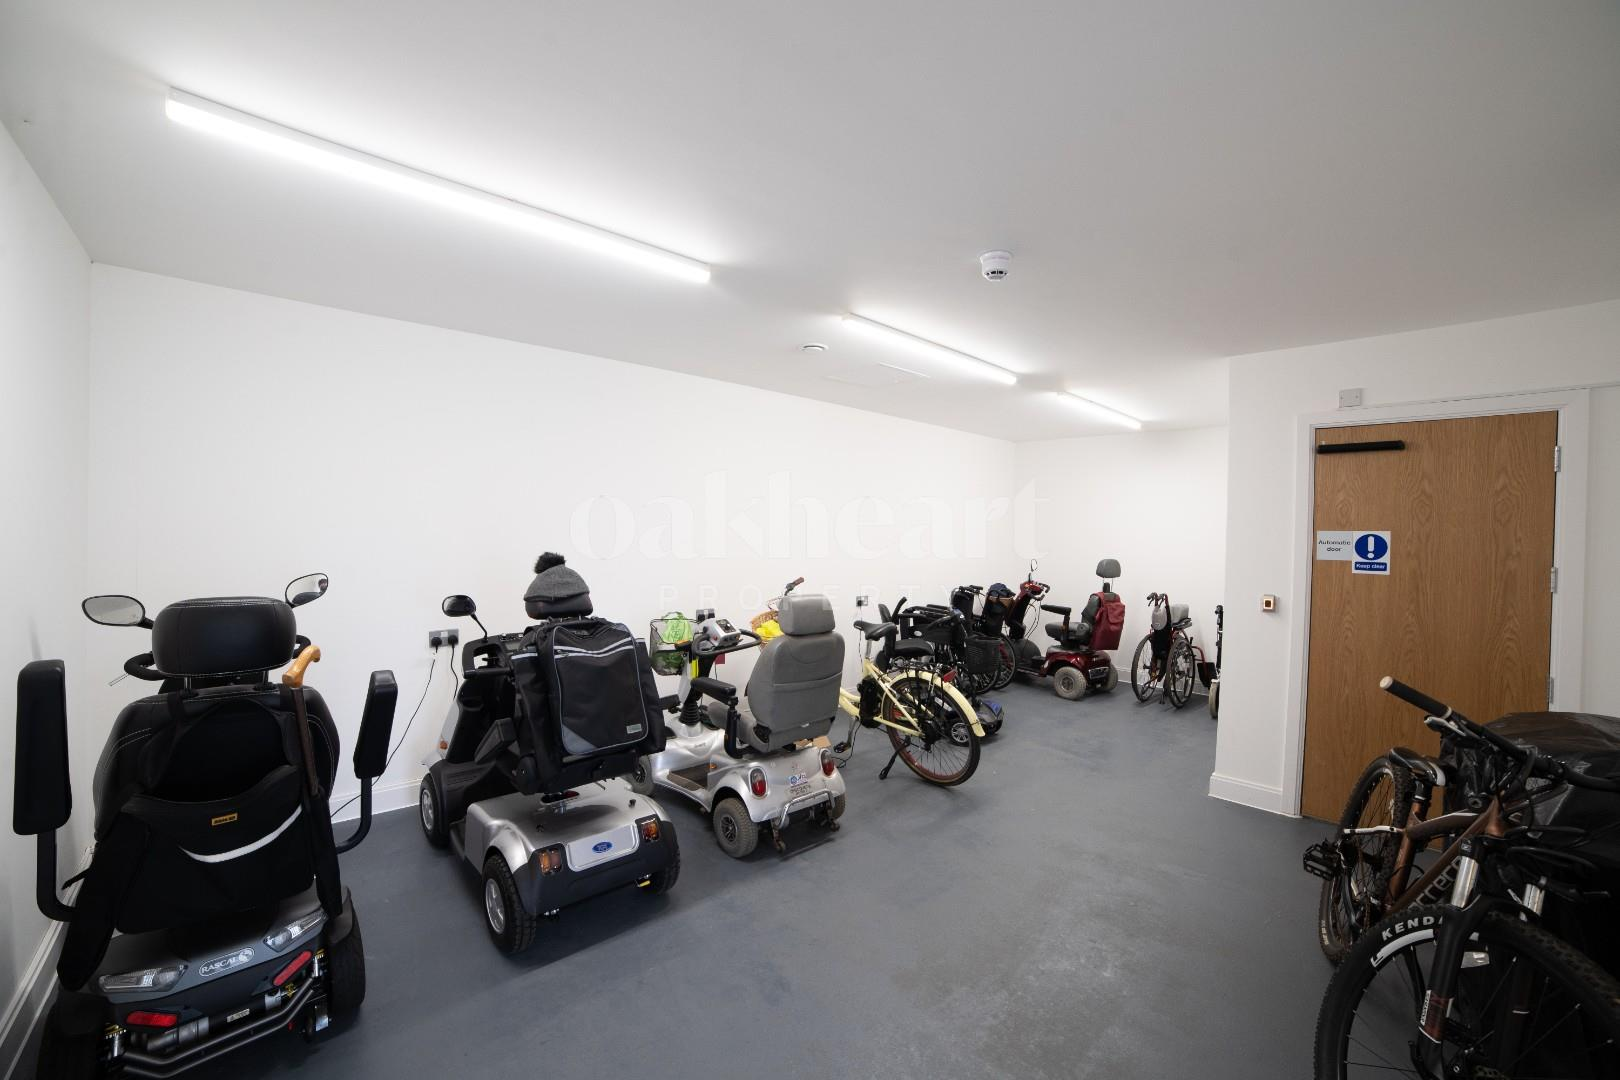 Mobility Scooter/Bike Park